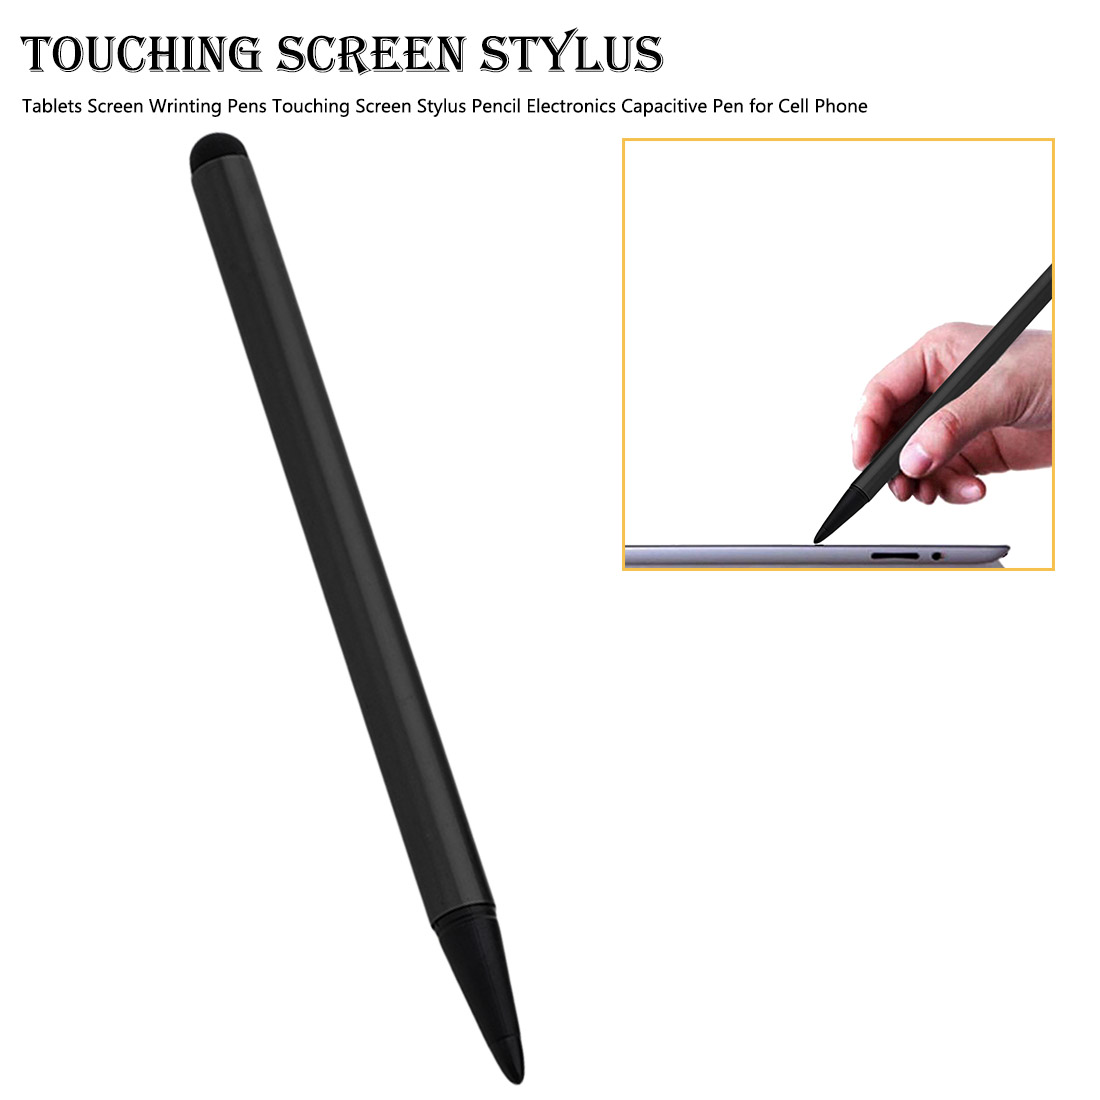 Office Tablets Screen Wrinting Pens Touching Screen Stylus Pencil Electronics Capacitive Pen For Cell Phone